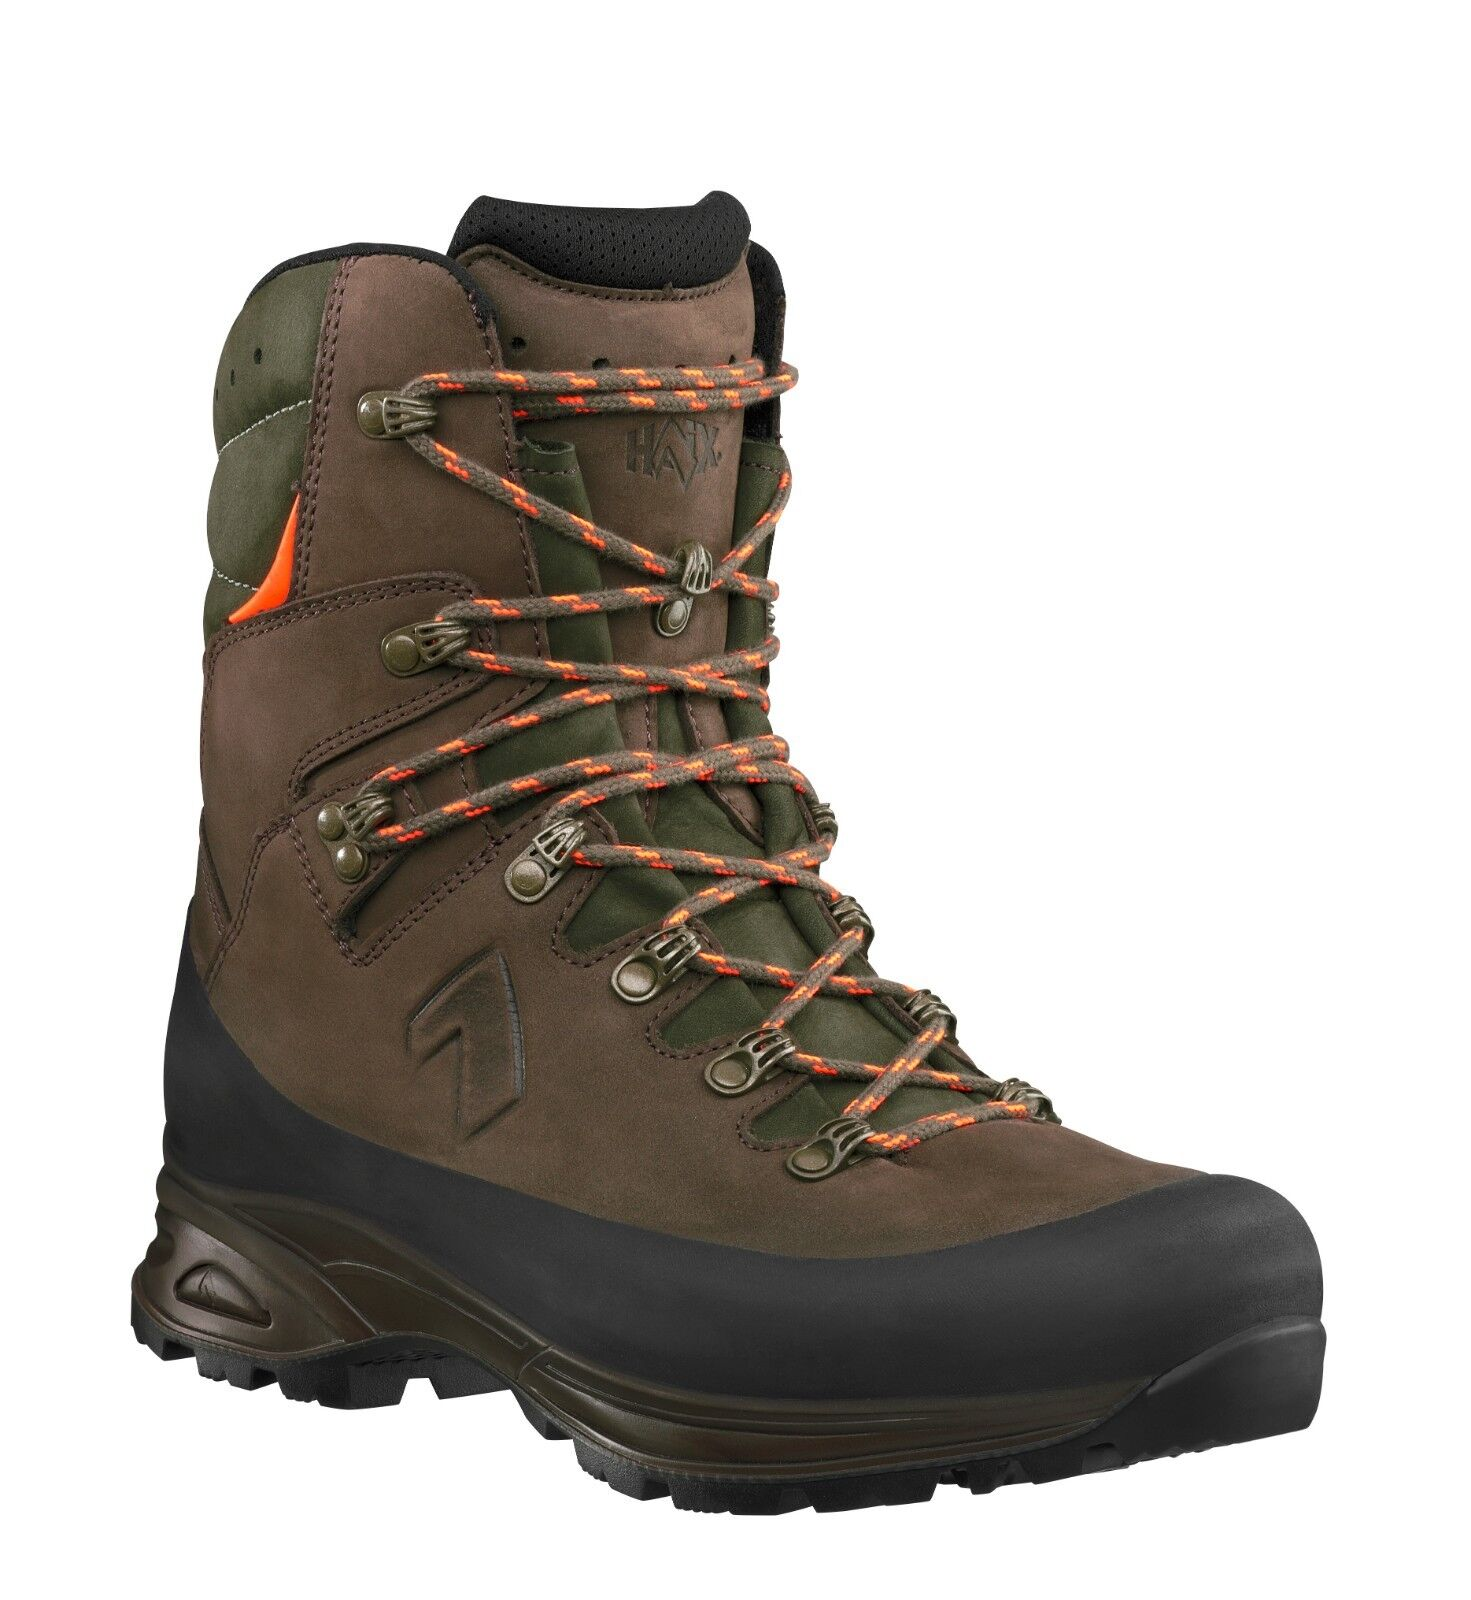 HAIX NATURE ONE GTX 206315 Comfortable mountain and hunting shoe